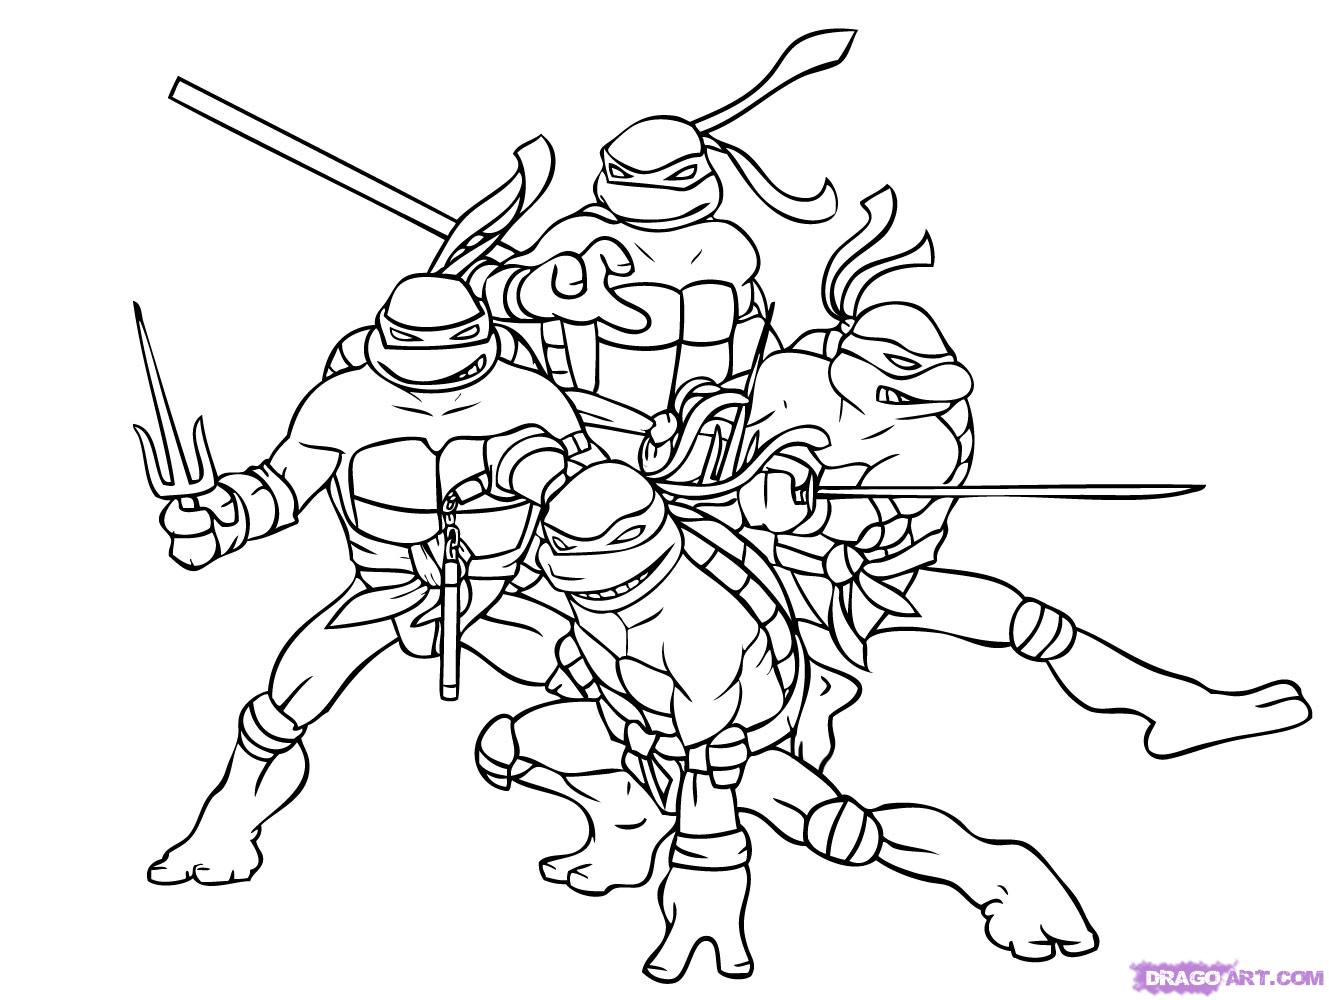 Coloring Online Ninja Turtle : Ninja turtles coloring pages leonardo az